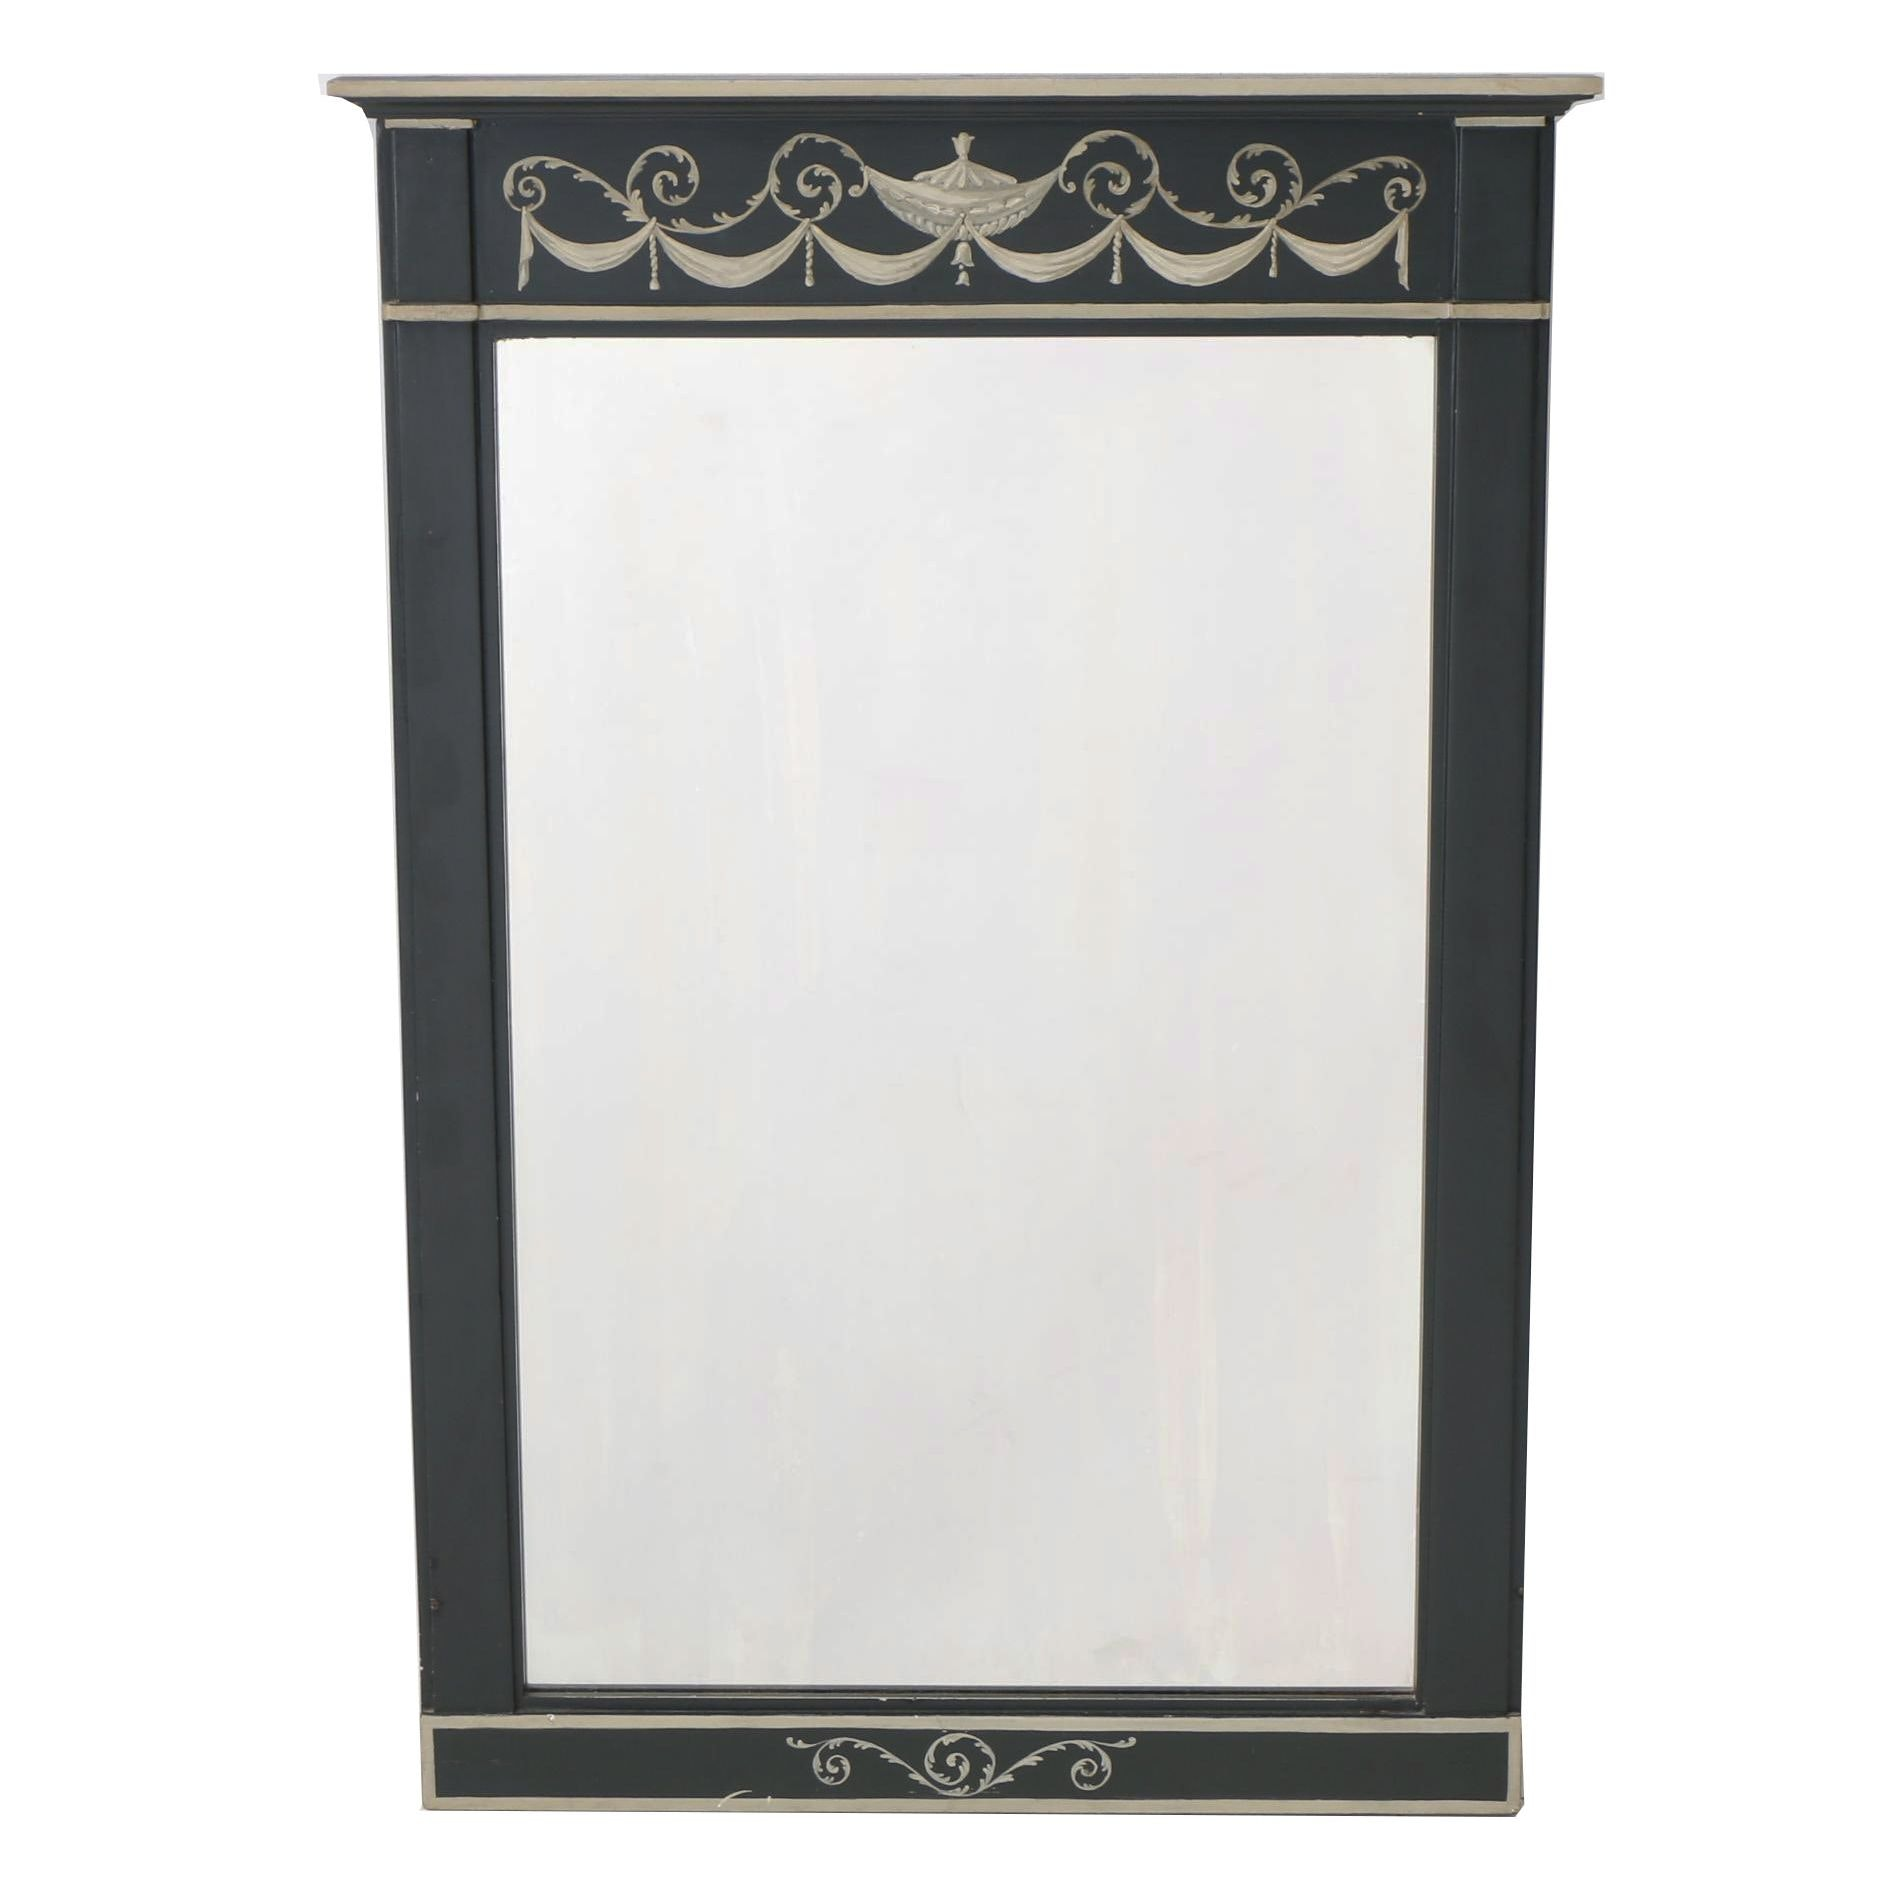 Hand-Painted Neoclassical Style Painted Trumeau Wall Mirror